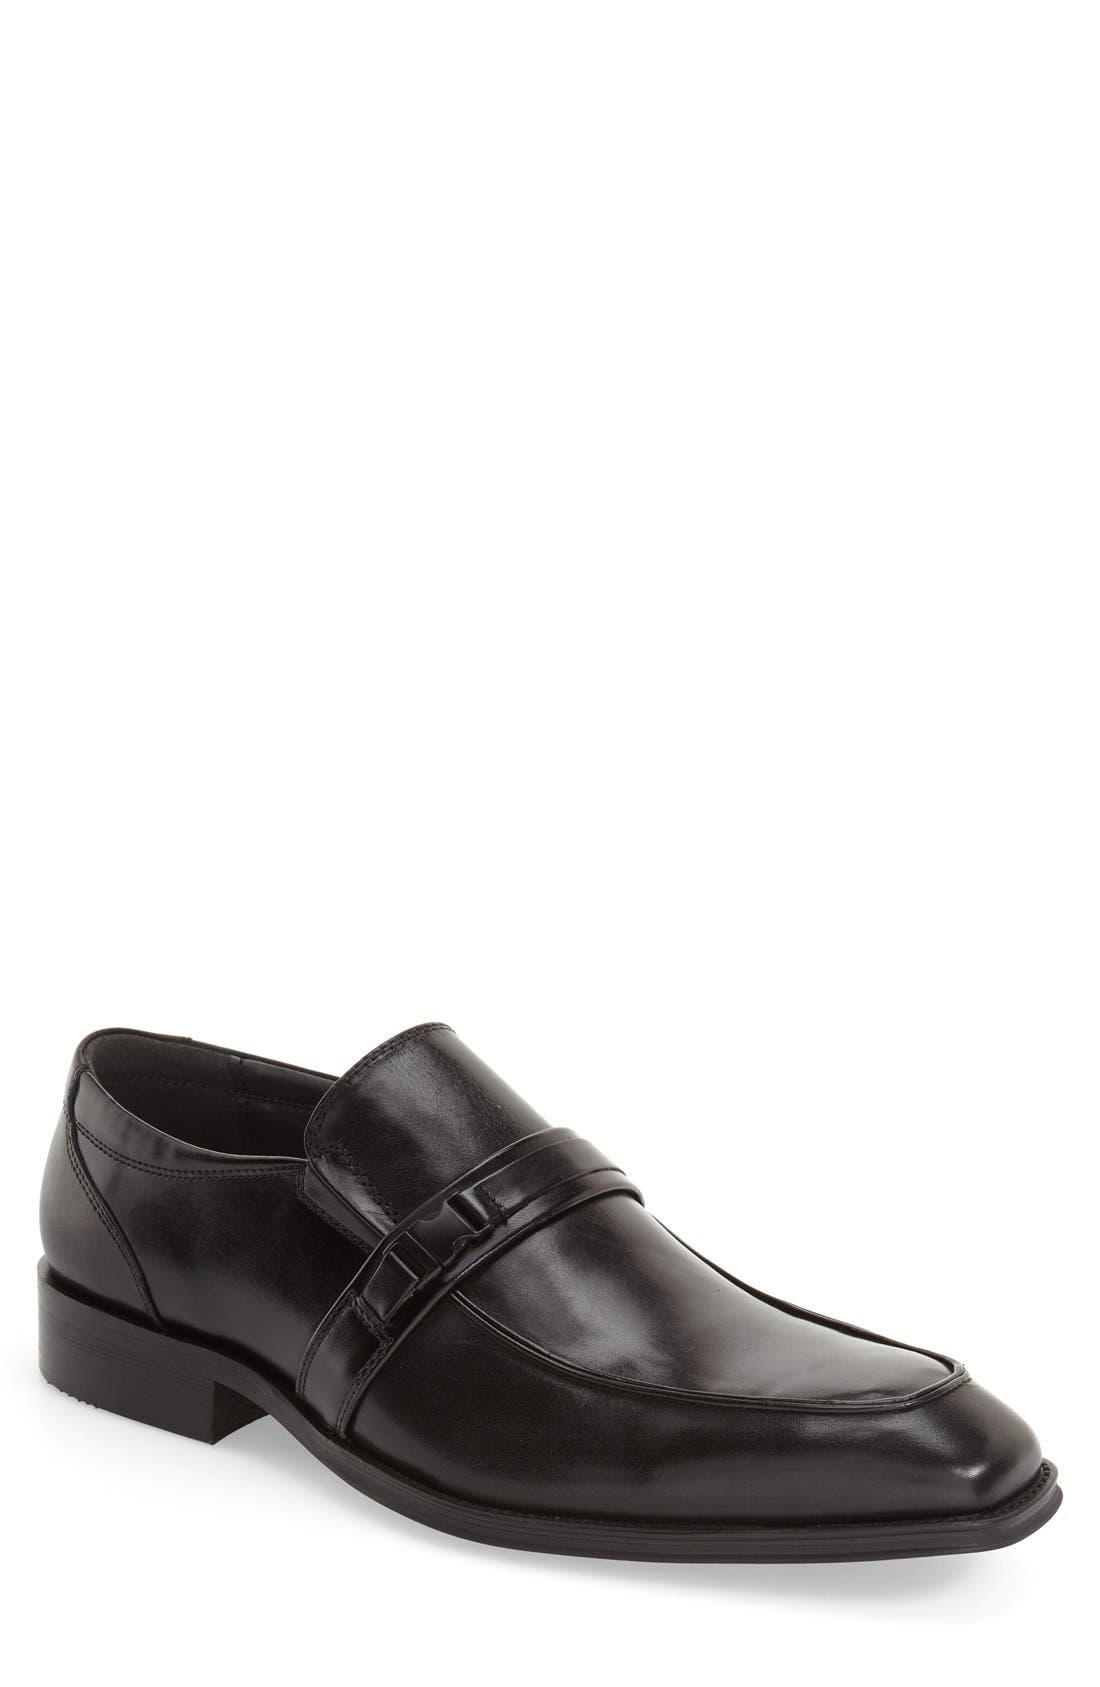 Reaction Kenneth Cole 'Perfect View' Venetian Loafer